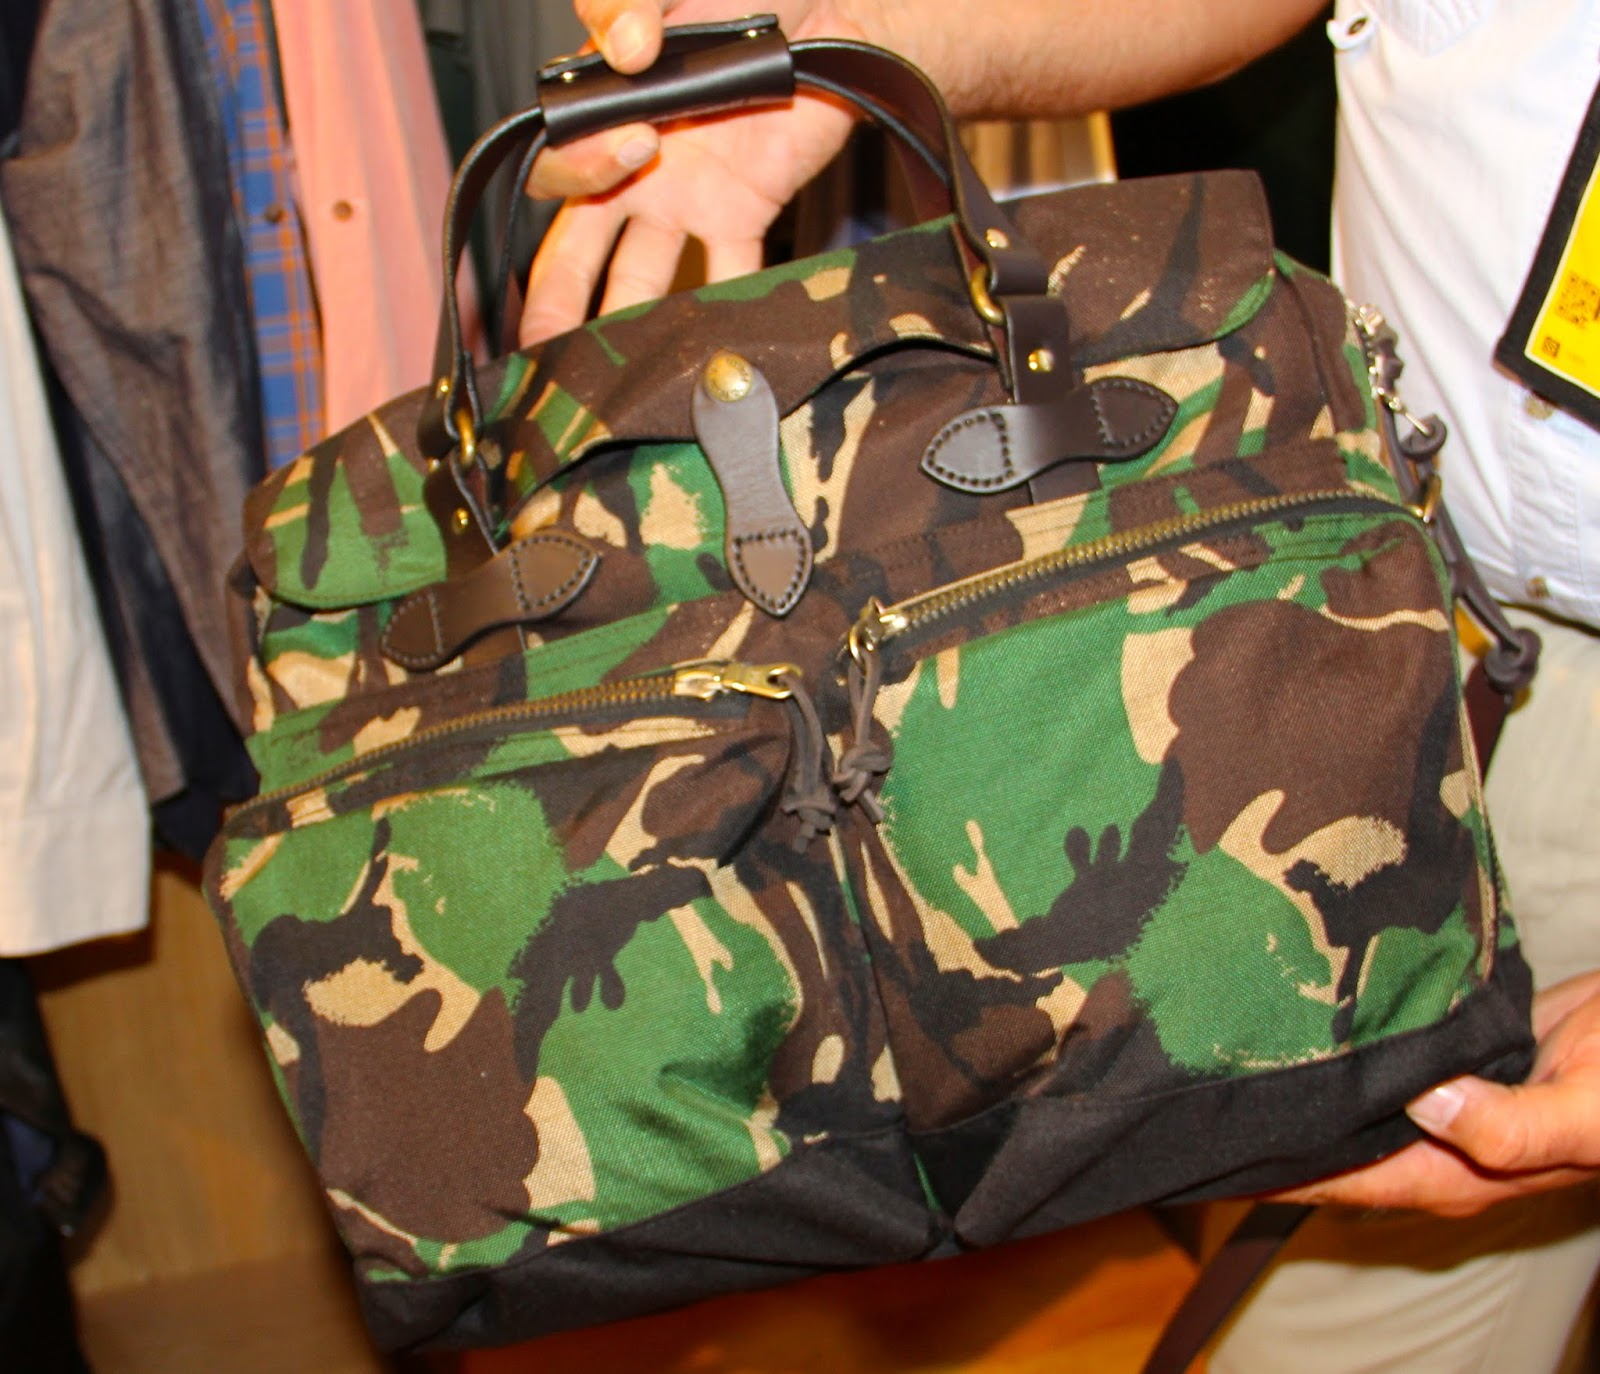 Outdoor Retailer New Cool Gadgets Gear Apparel Footwear S 2014 Part 5 Espro Napoly Genuine Leather Portofolio Bag Black Hr Briefcase 485 In Camo Made To Go The Distance With Cordura Tough Water Repellent Fabric Top Of Line Riri Zippers W Zipper Pulls Closing